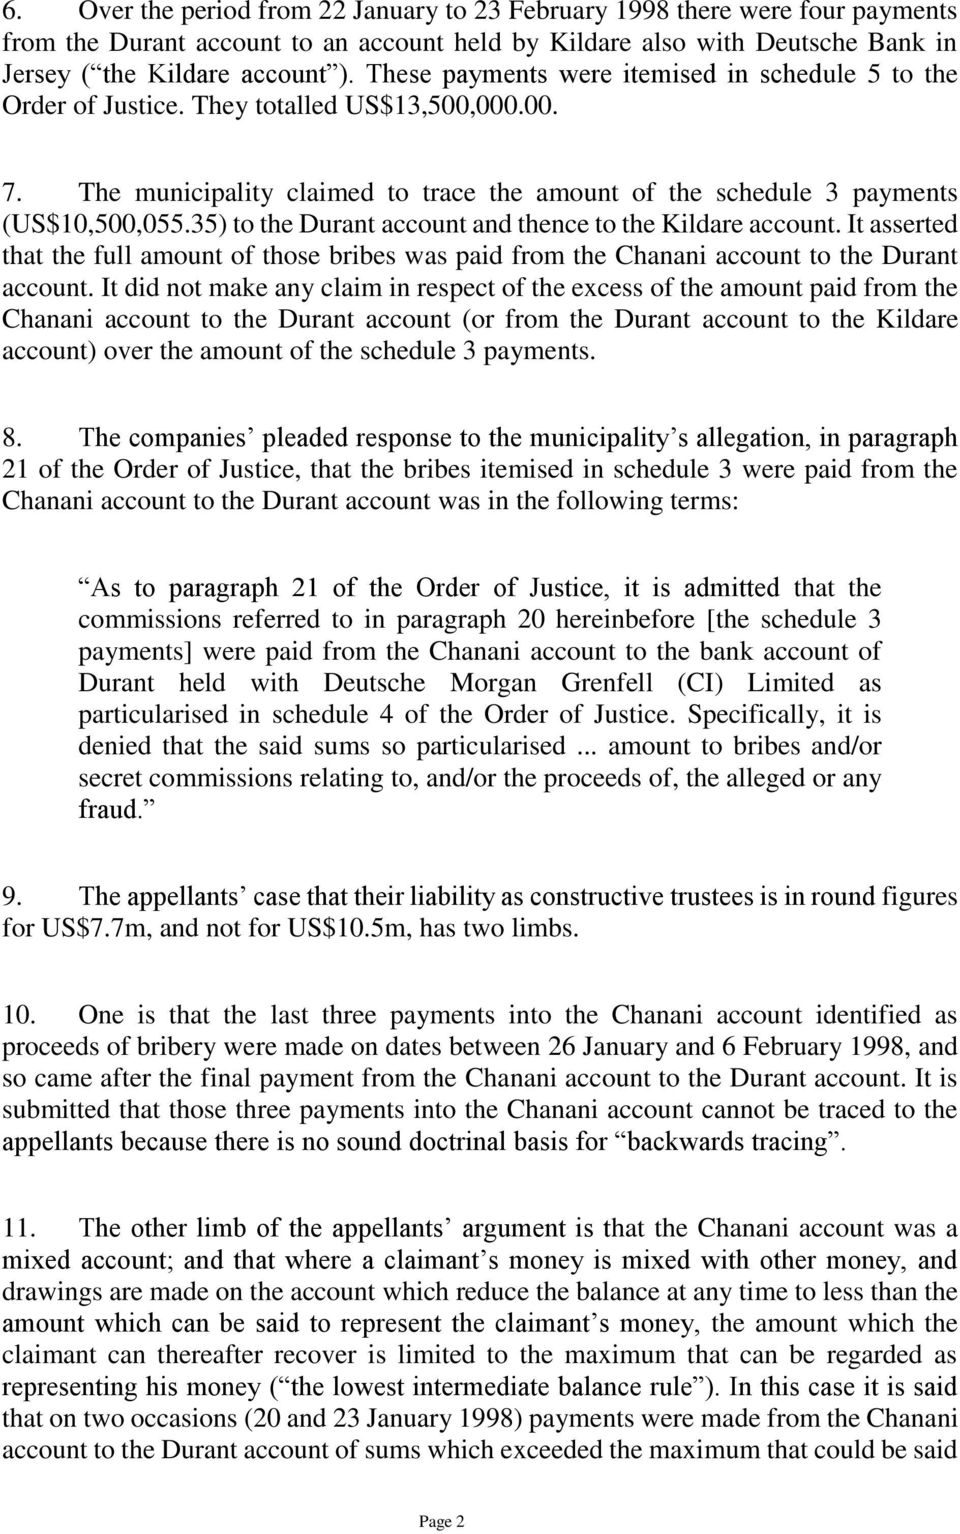 35) to the Durant account and thence to the Kildare account. It asserted that the full amount of those bribes was paid from the Chanani account to the Durant account.